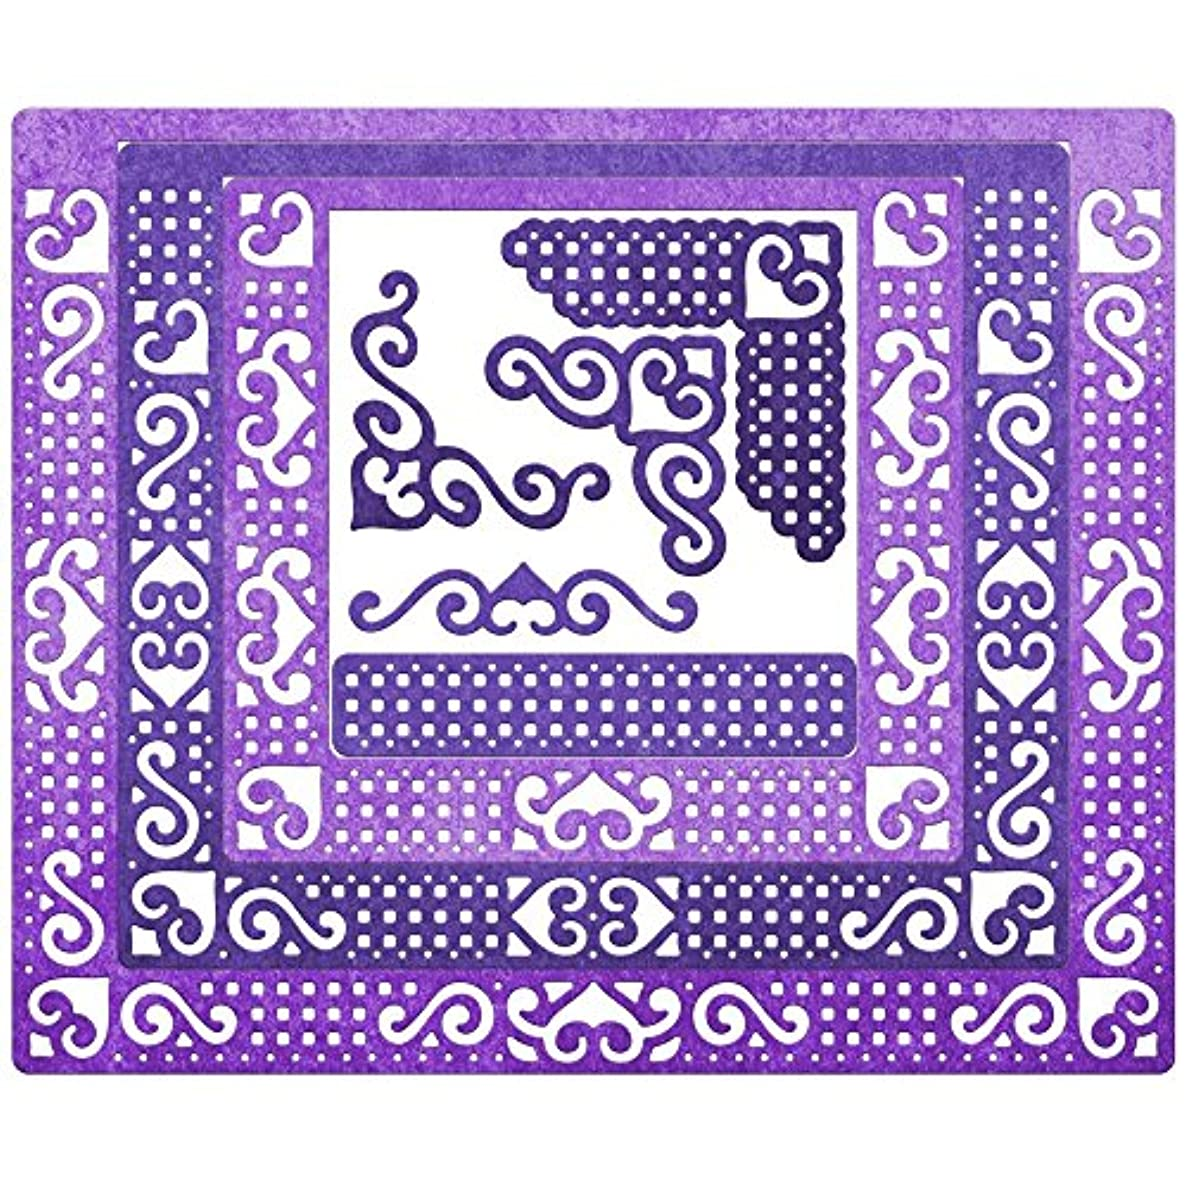 Cheery Lynn Designs DL324 Lords & Commons A2 Card Facer Die Set